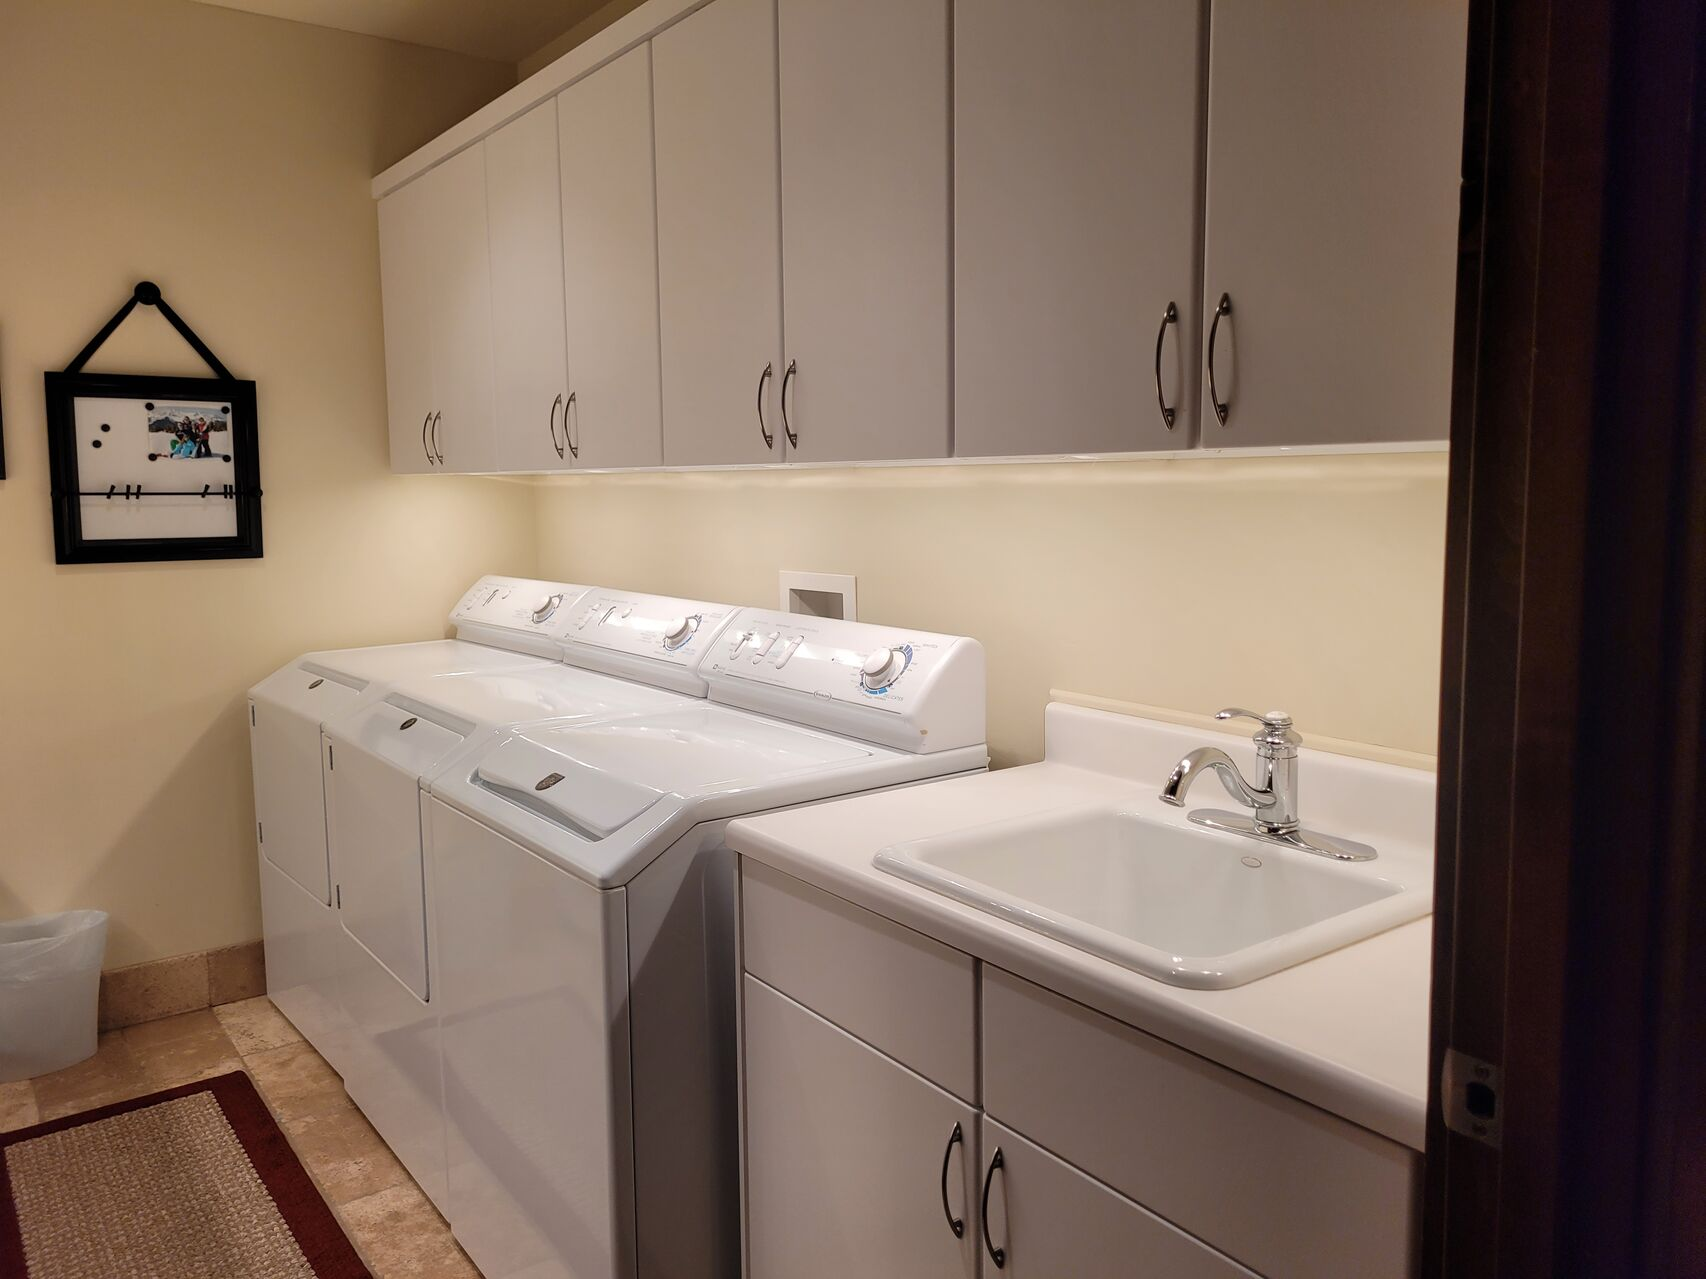 Laundry room with large washer and dryer and utility sink